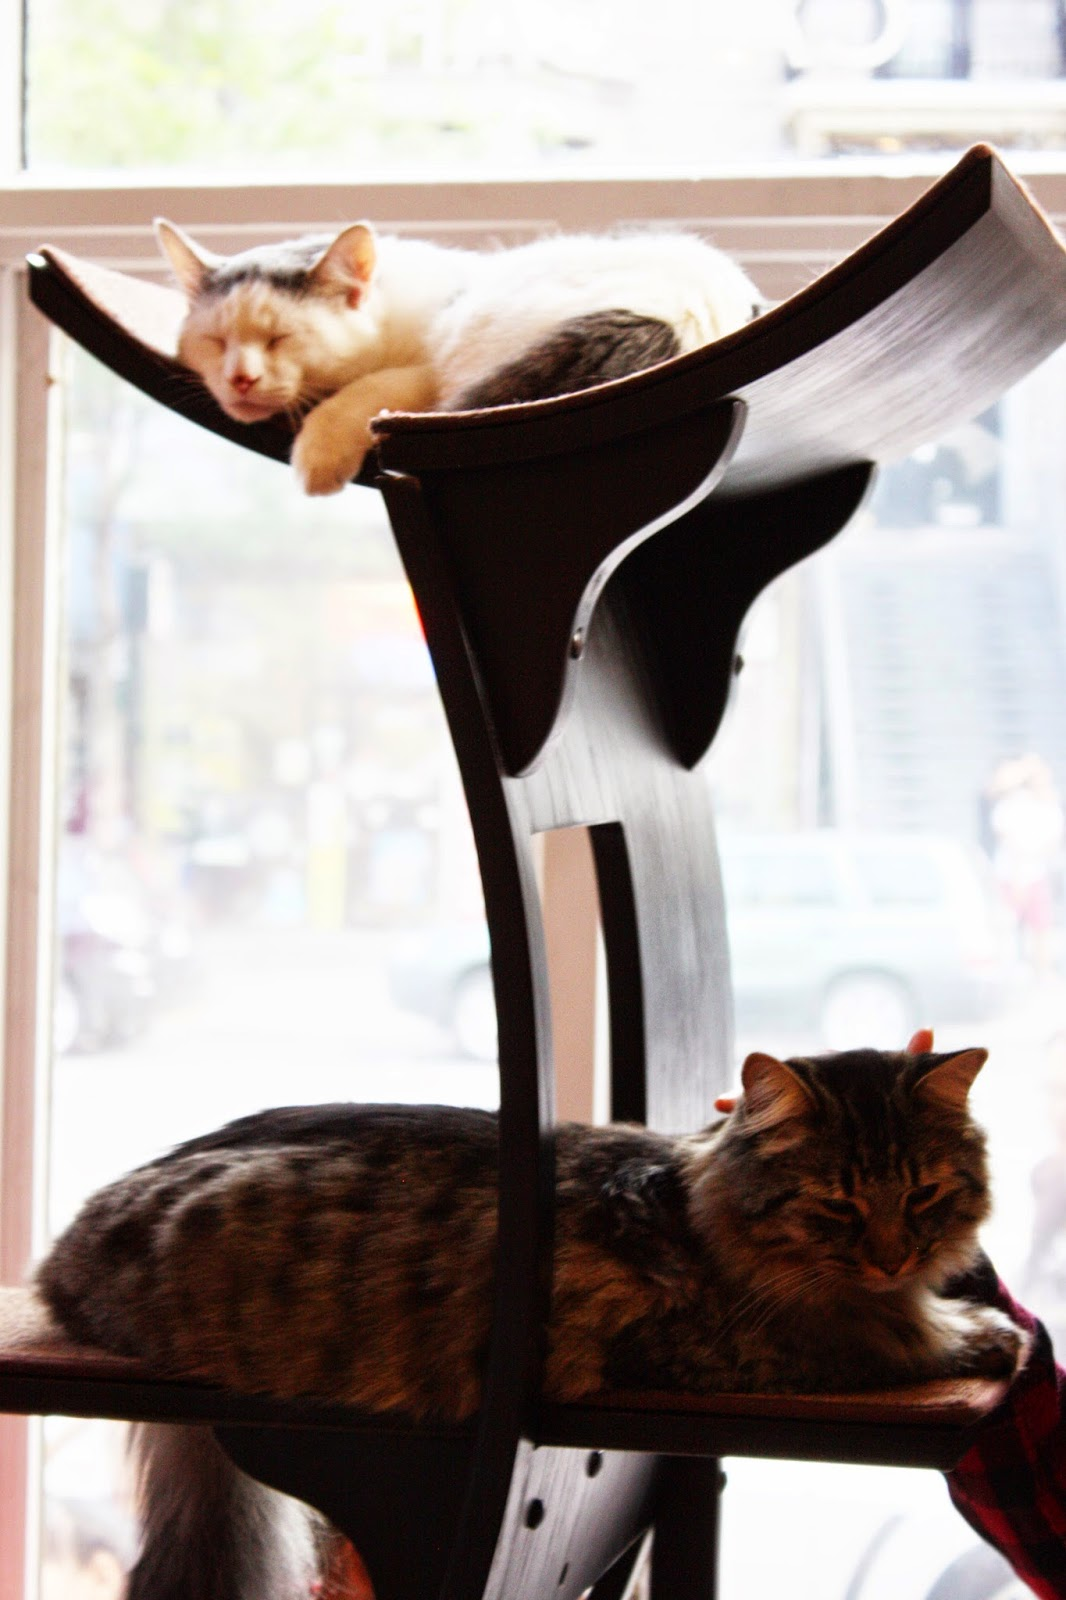 Le Cafe de Chats Cat Cafe Montreal Quebec